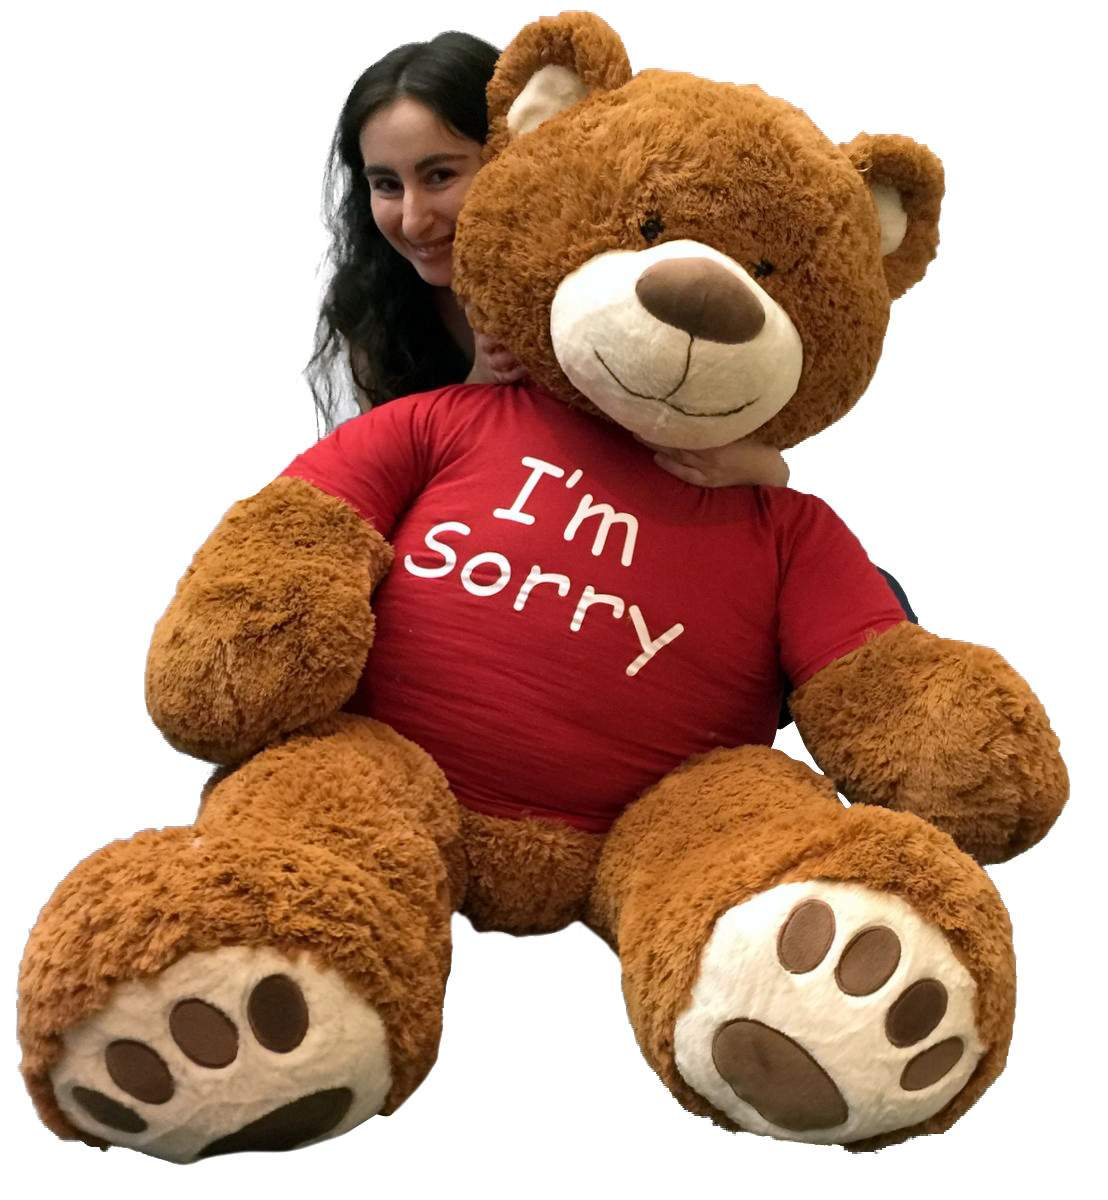 5 Foot Giant Teddy Bear 60 Inches Soft Cinnamon Brown Color Wears I'M SORRY T-shirt by BigPlush